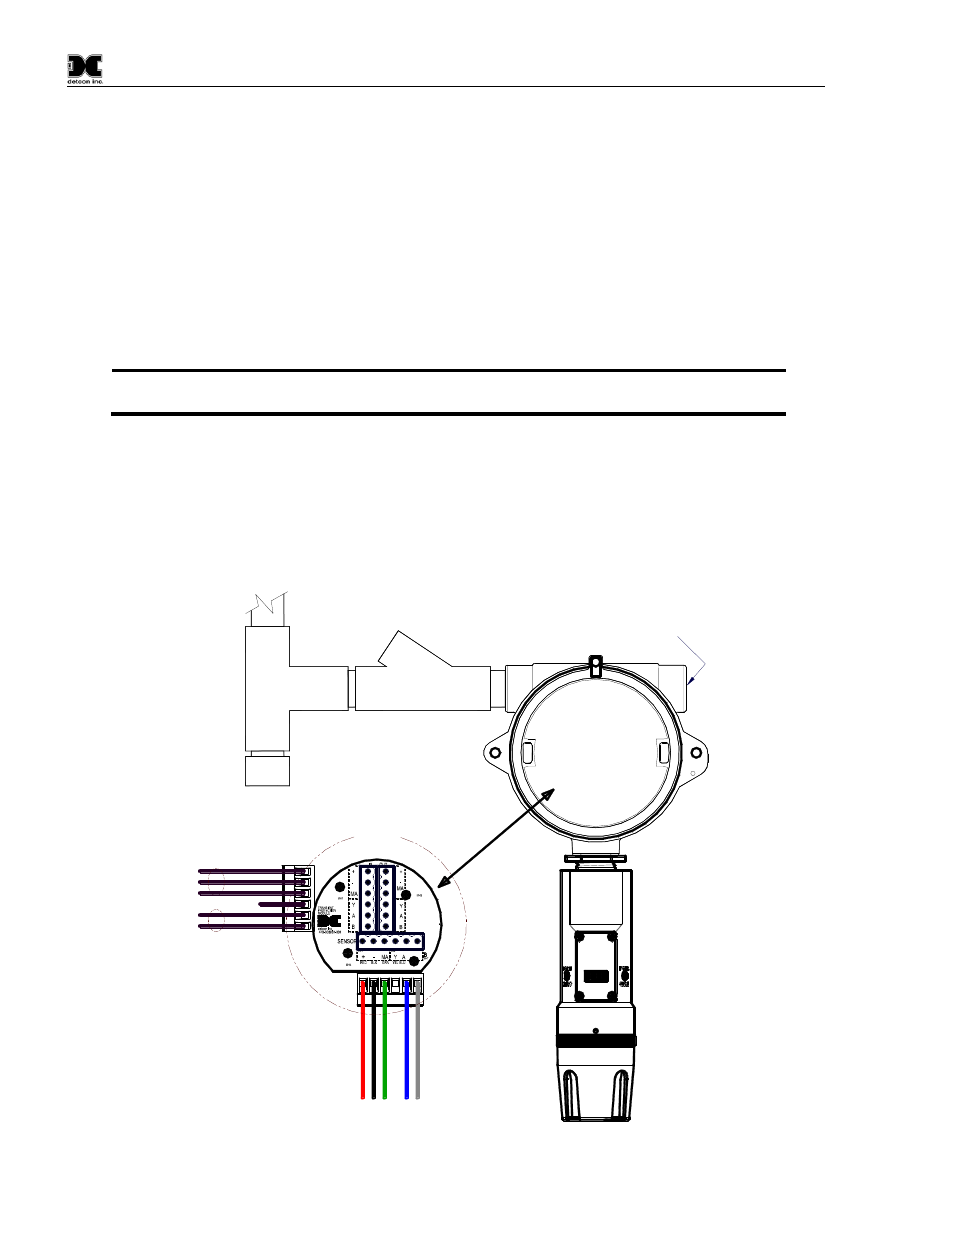 5 electrical installation, Figure 7 typical installation | Detcon TP-700 User Manual | Page 12 / 48